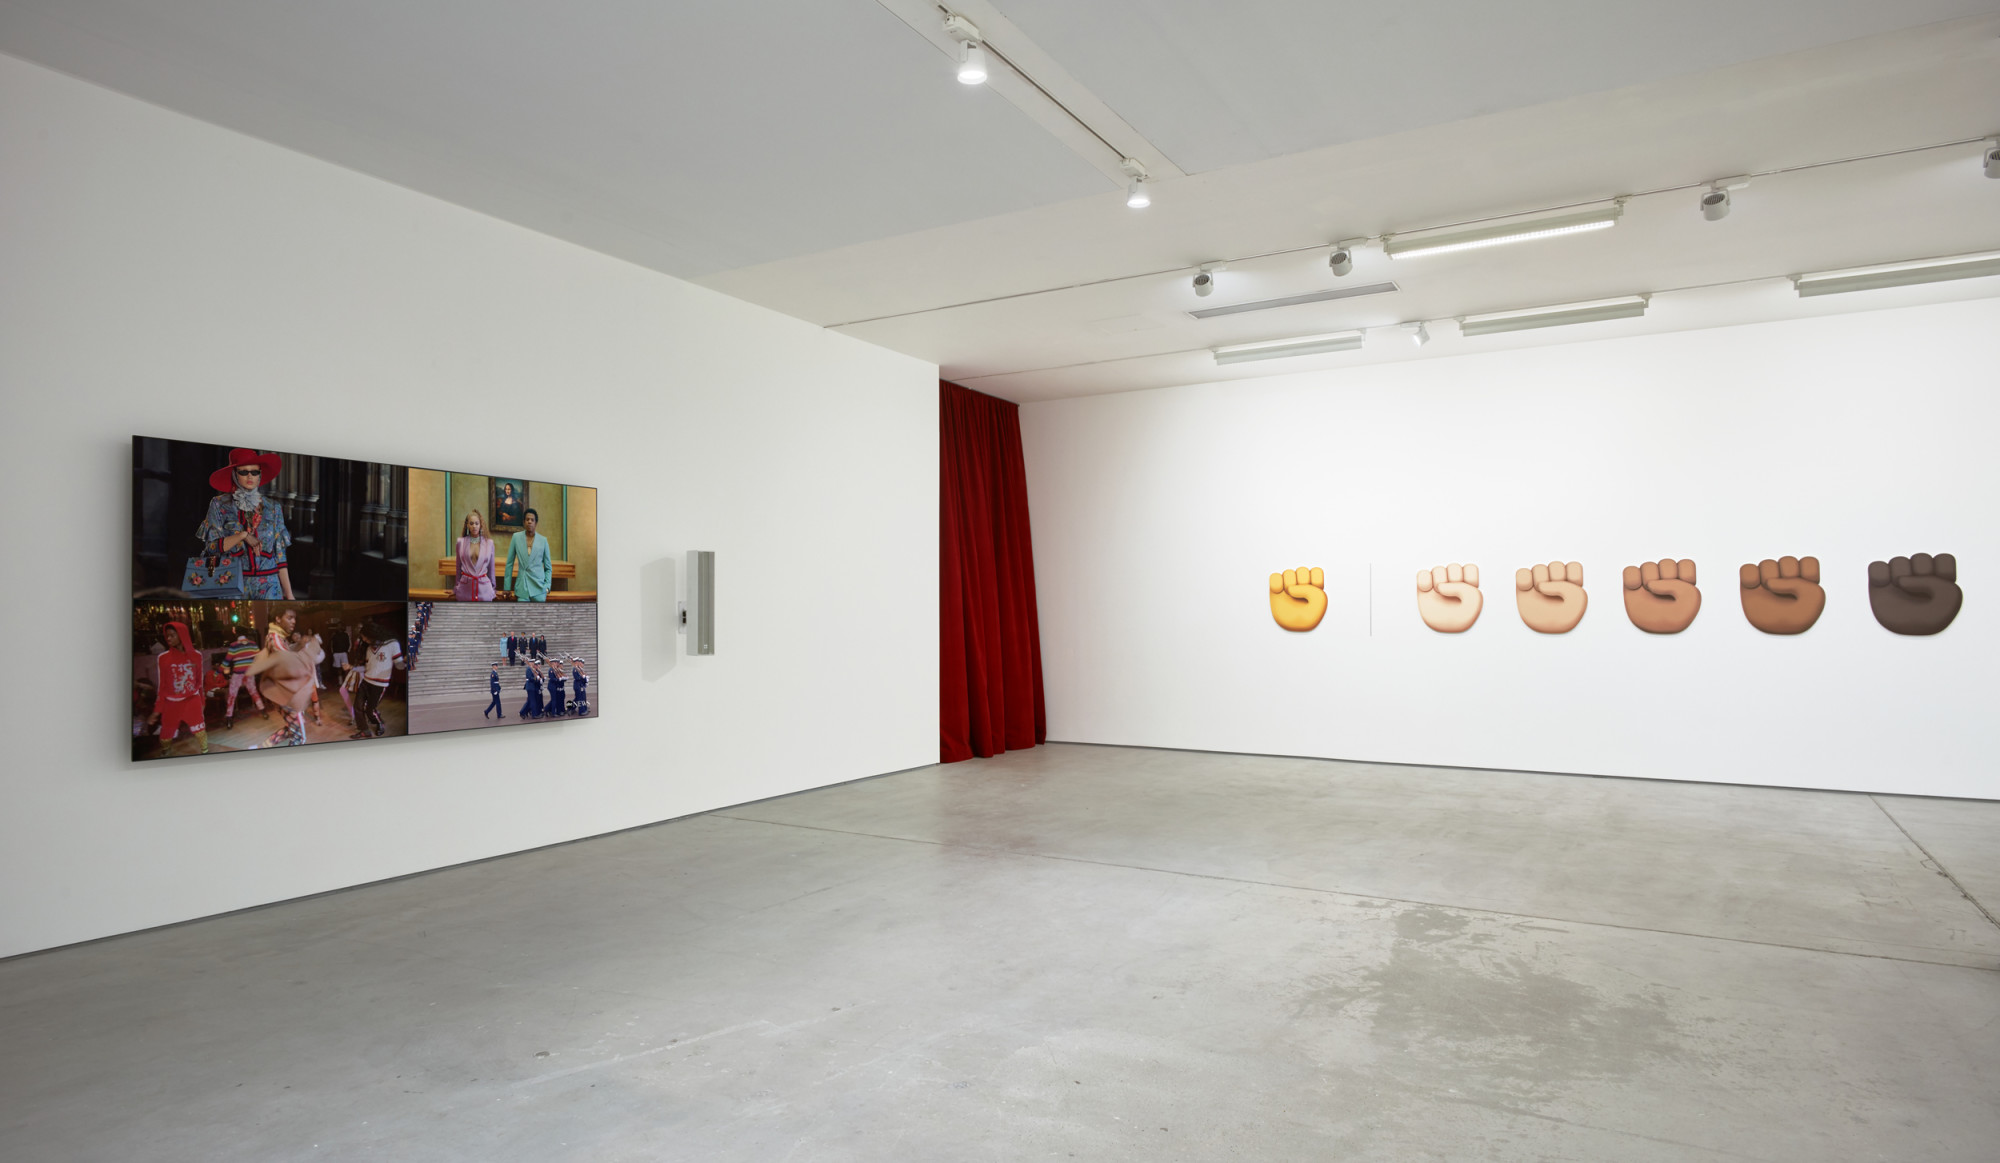 <p>Installation view, 2019</p><p>Photo by Robert Glowacki</p>